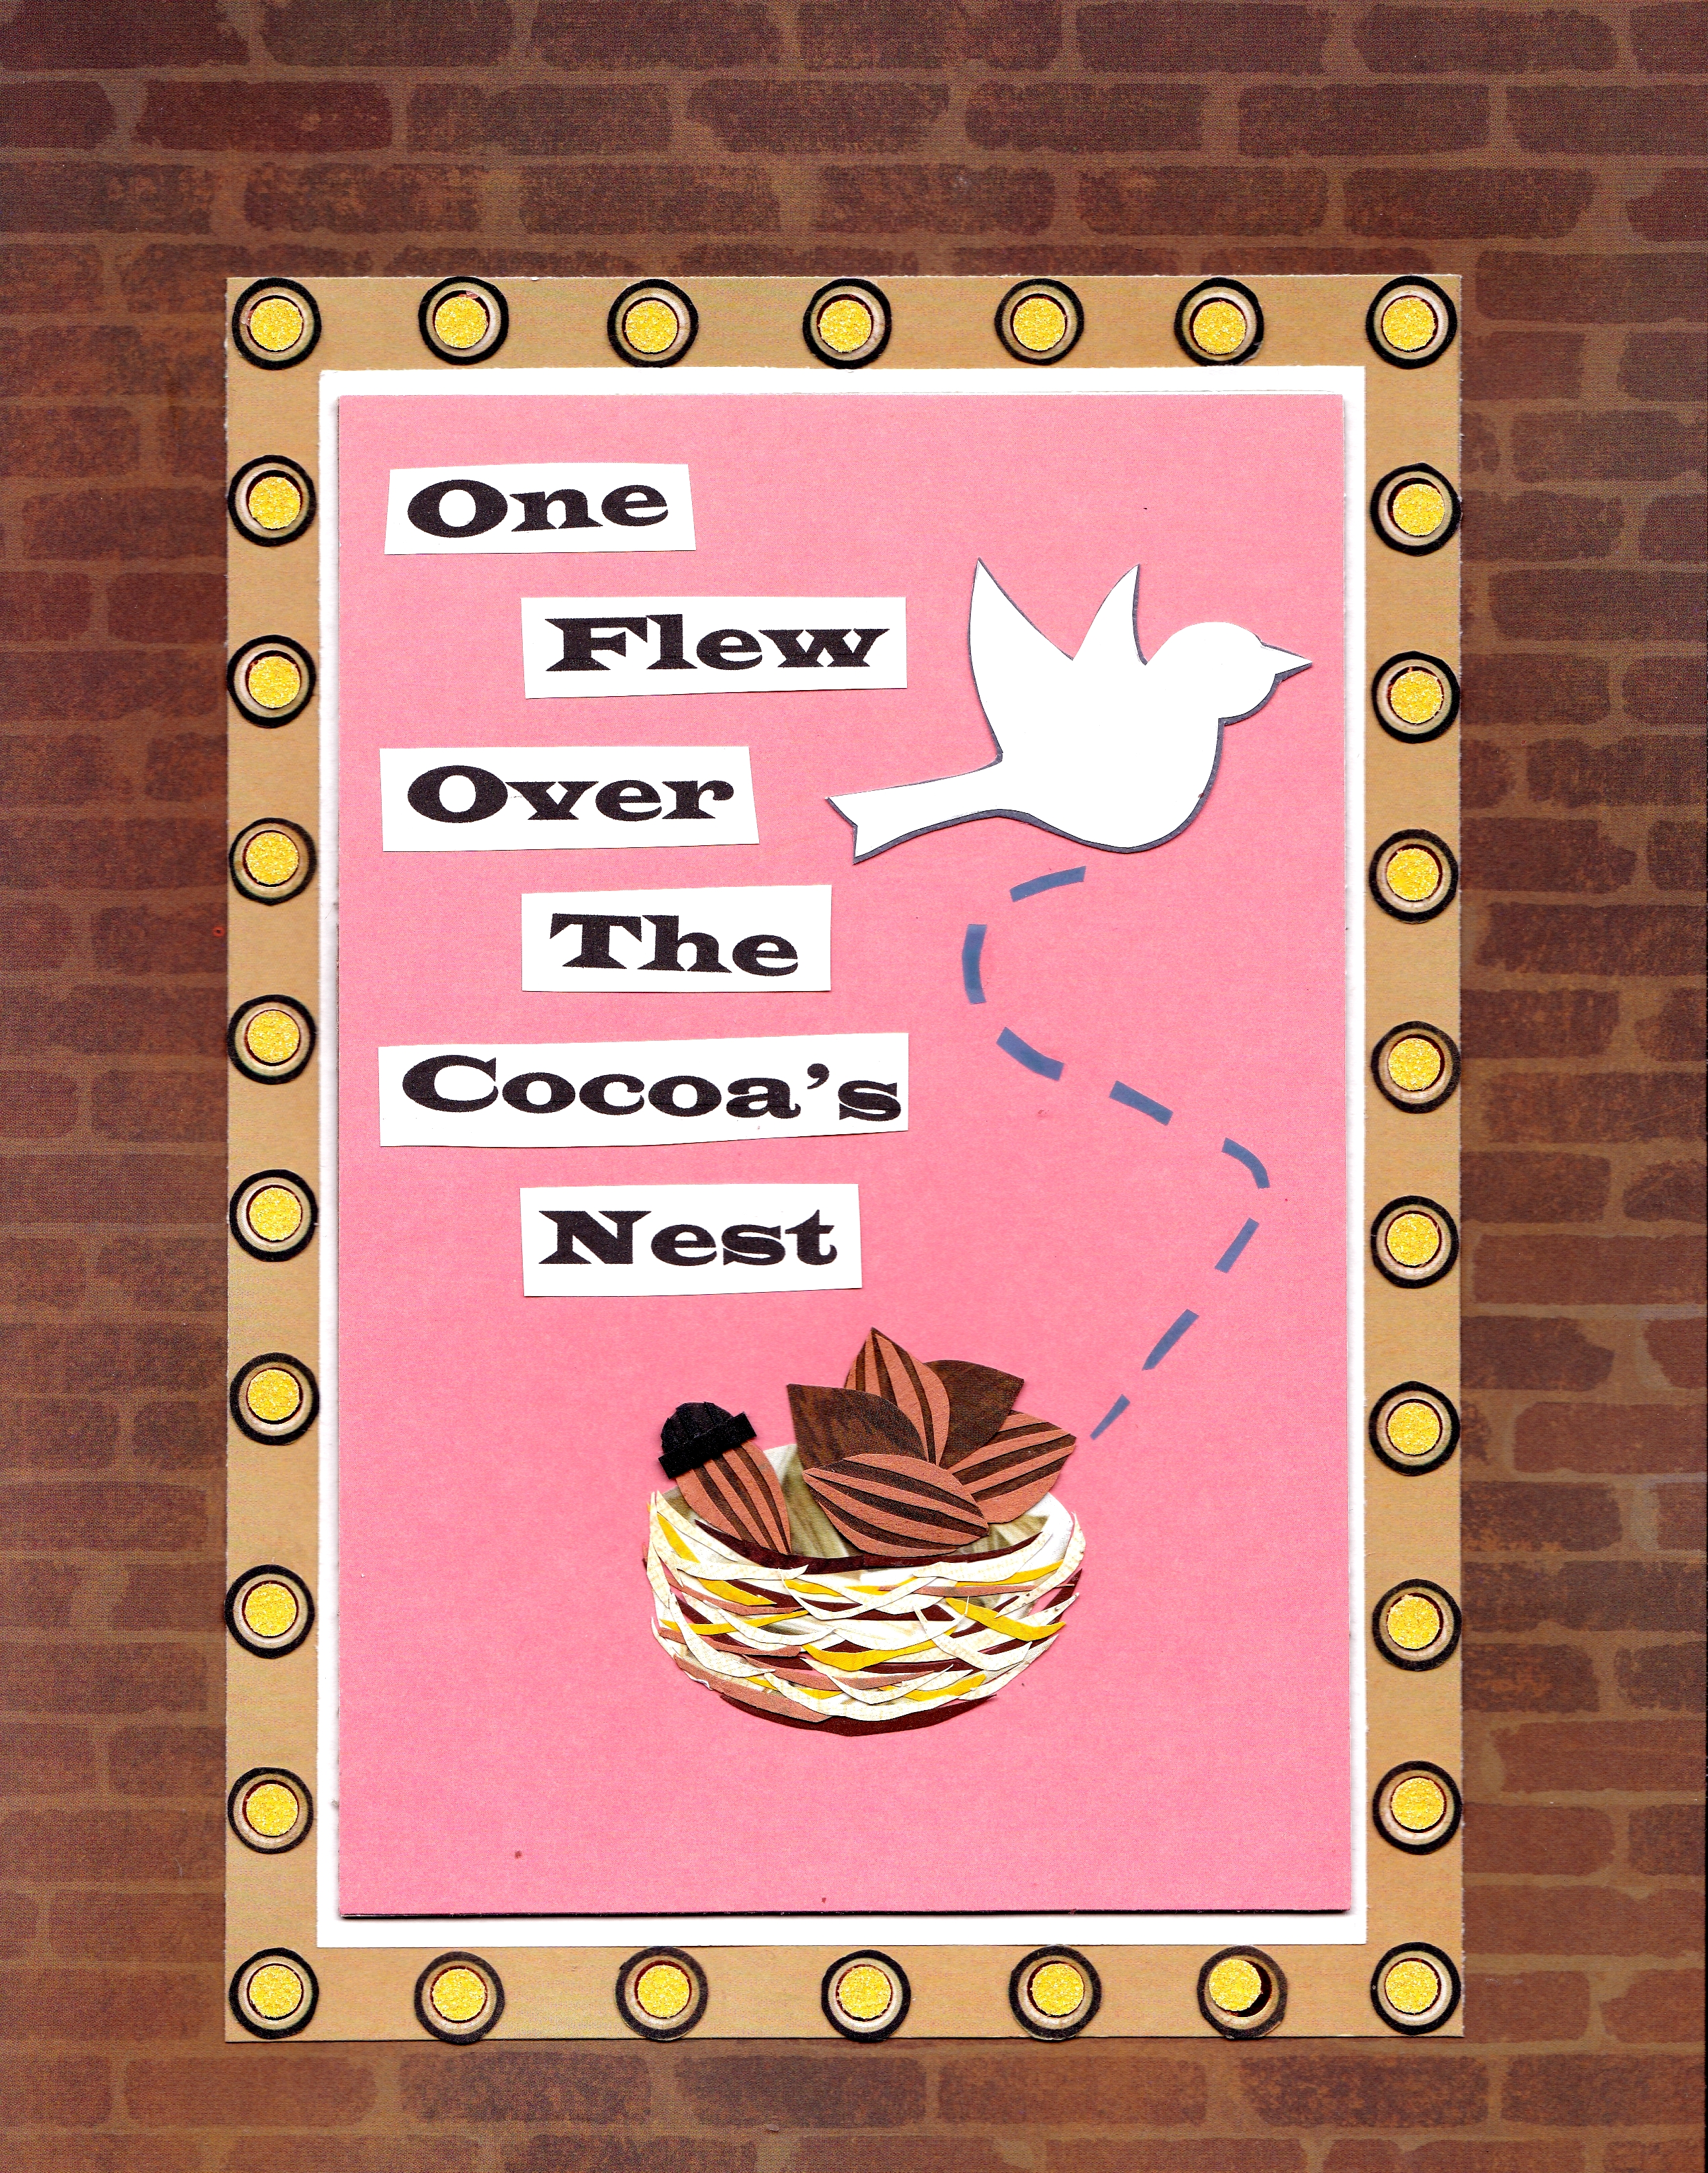 One Flew Over a Cocoa's Nest